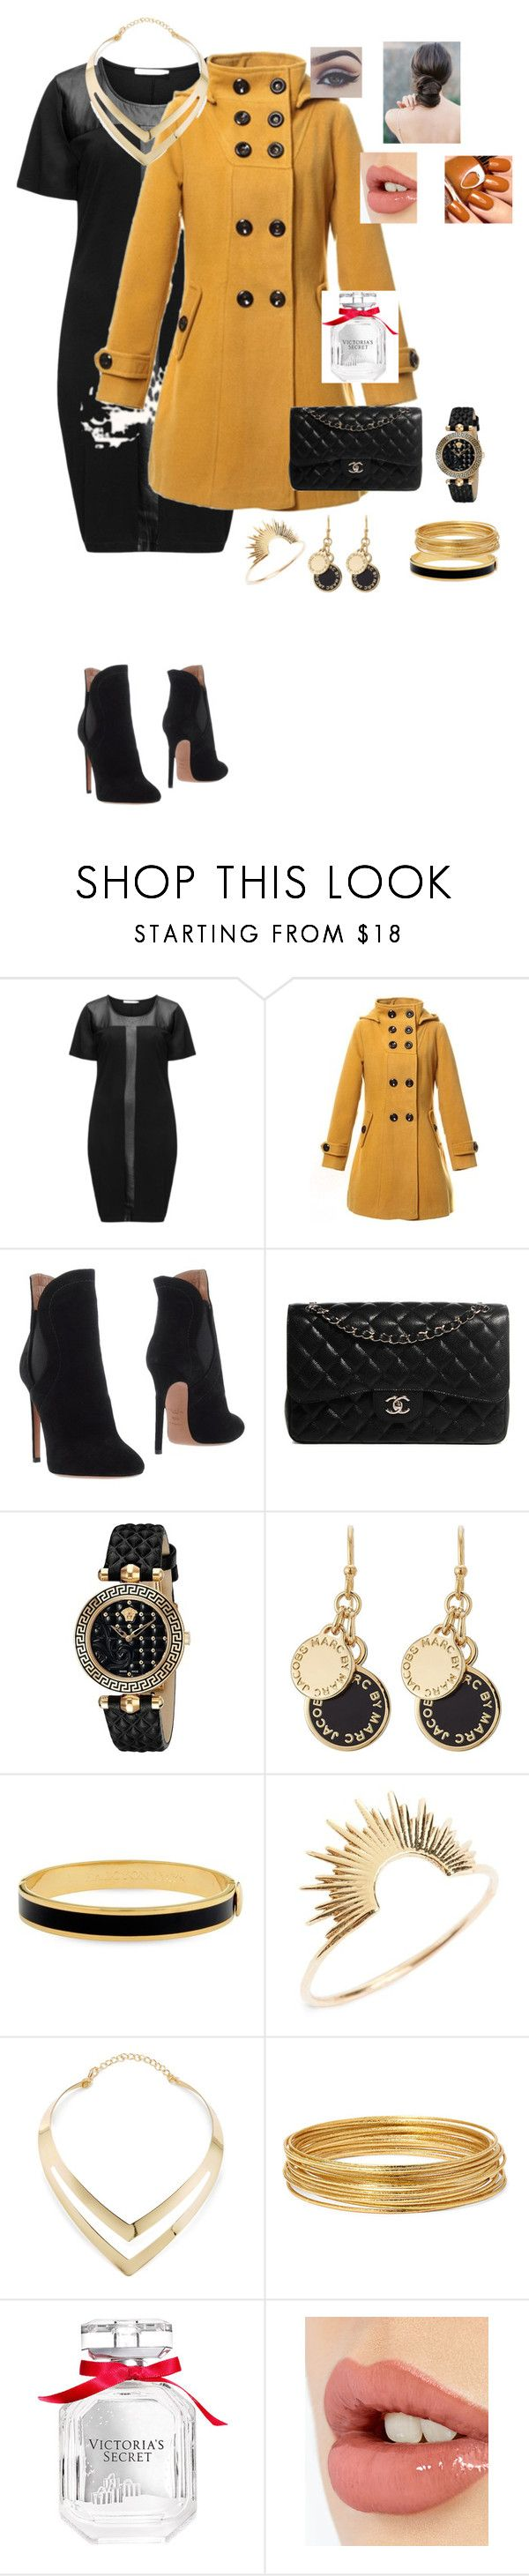 curvy new year by jaslene b by jaslenetejada on Polyvore featuring Studio, Alaïa, Chanel, Sarah & Sebastian, Fortuni, Versace, Bold Elements, Marc by Marc Jacobs, Halcyon Days and Charlotte Tilbury